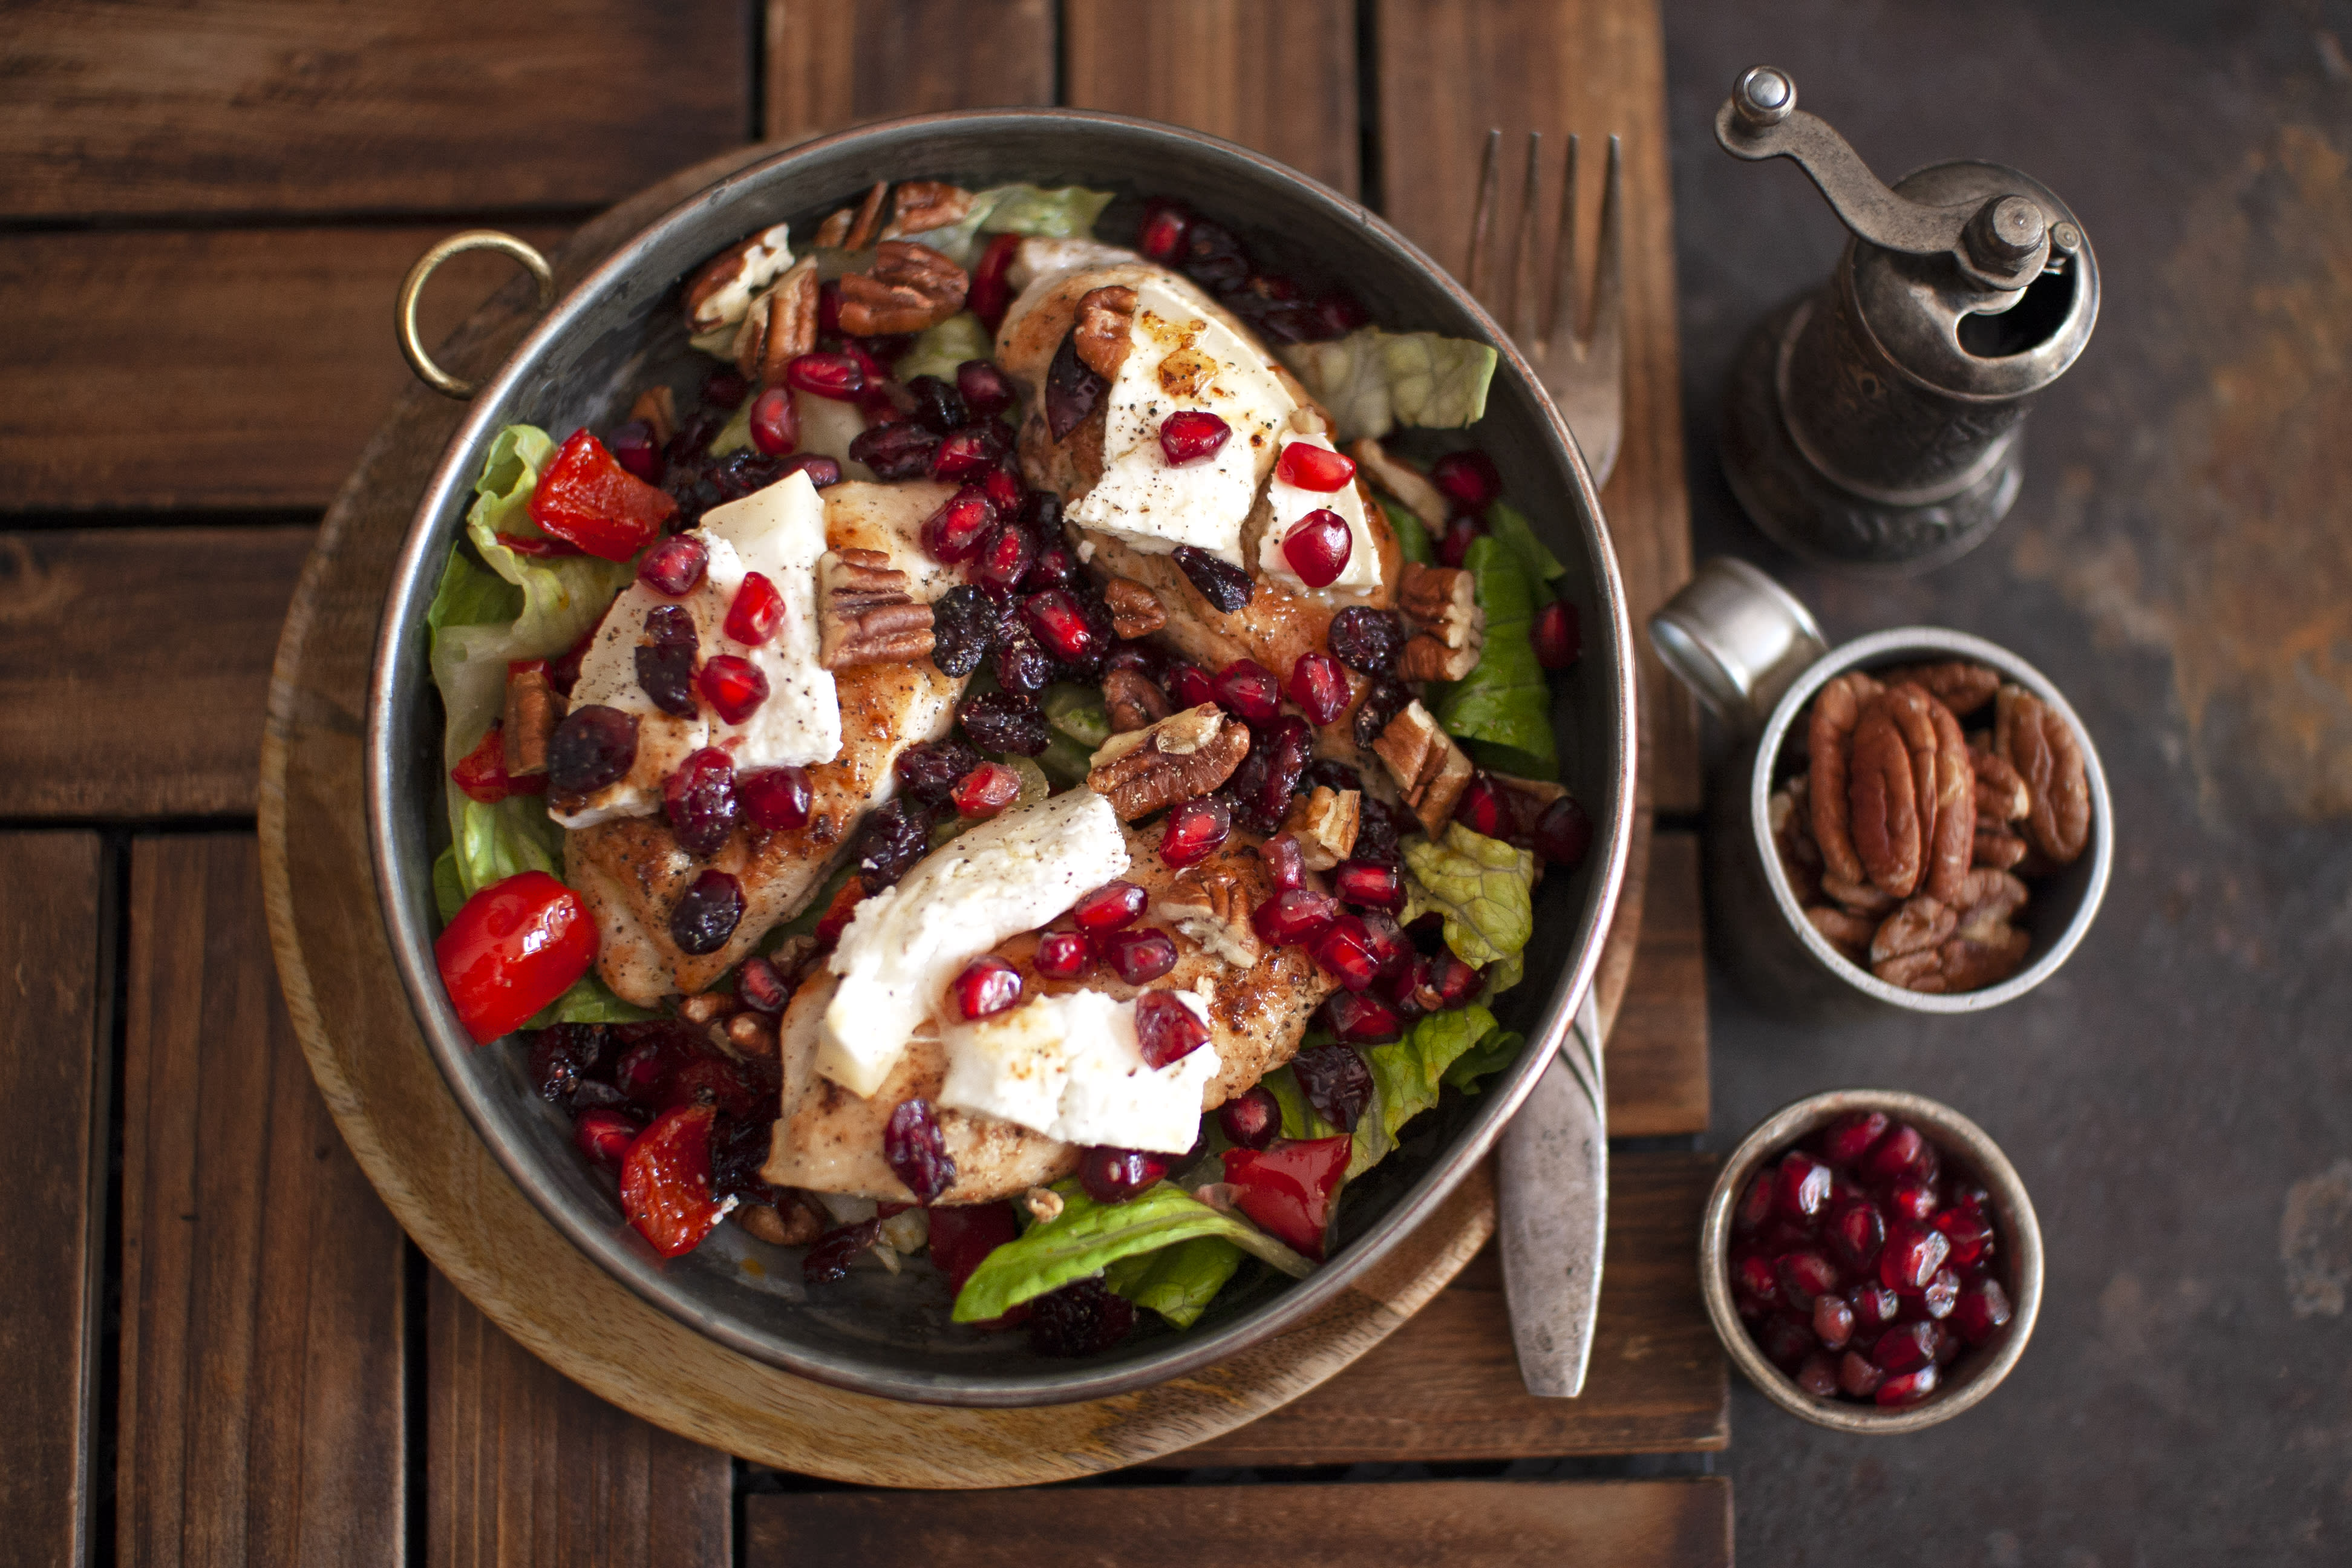 Chicken and Goat Cheese Salad with Cranberries, Roasted Peppers and Pecans